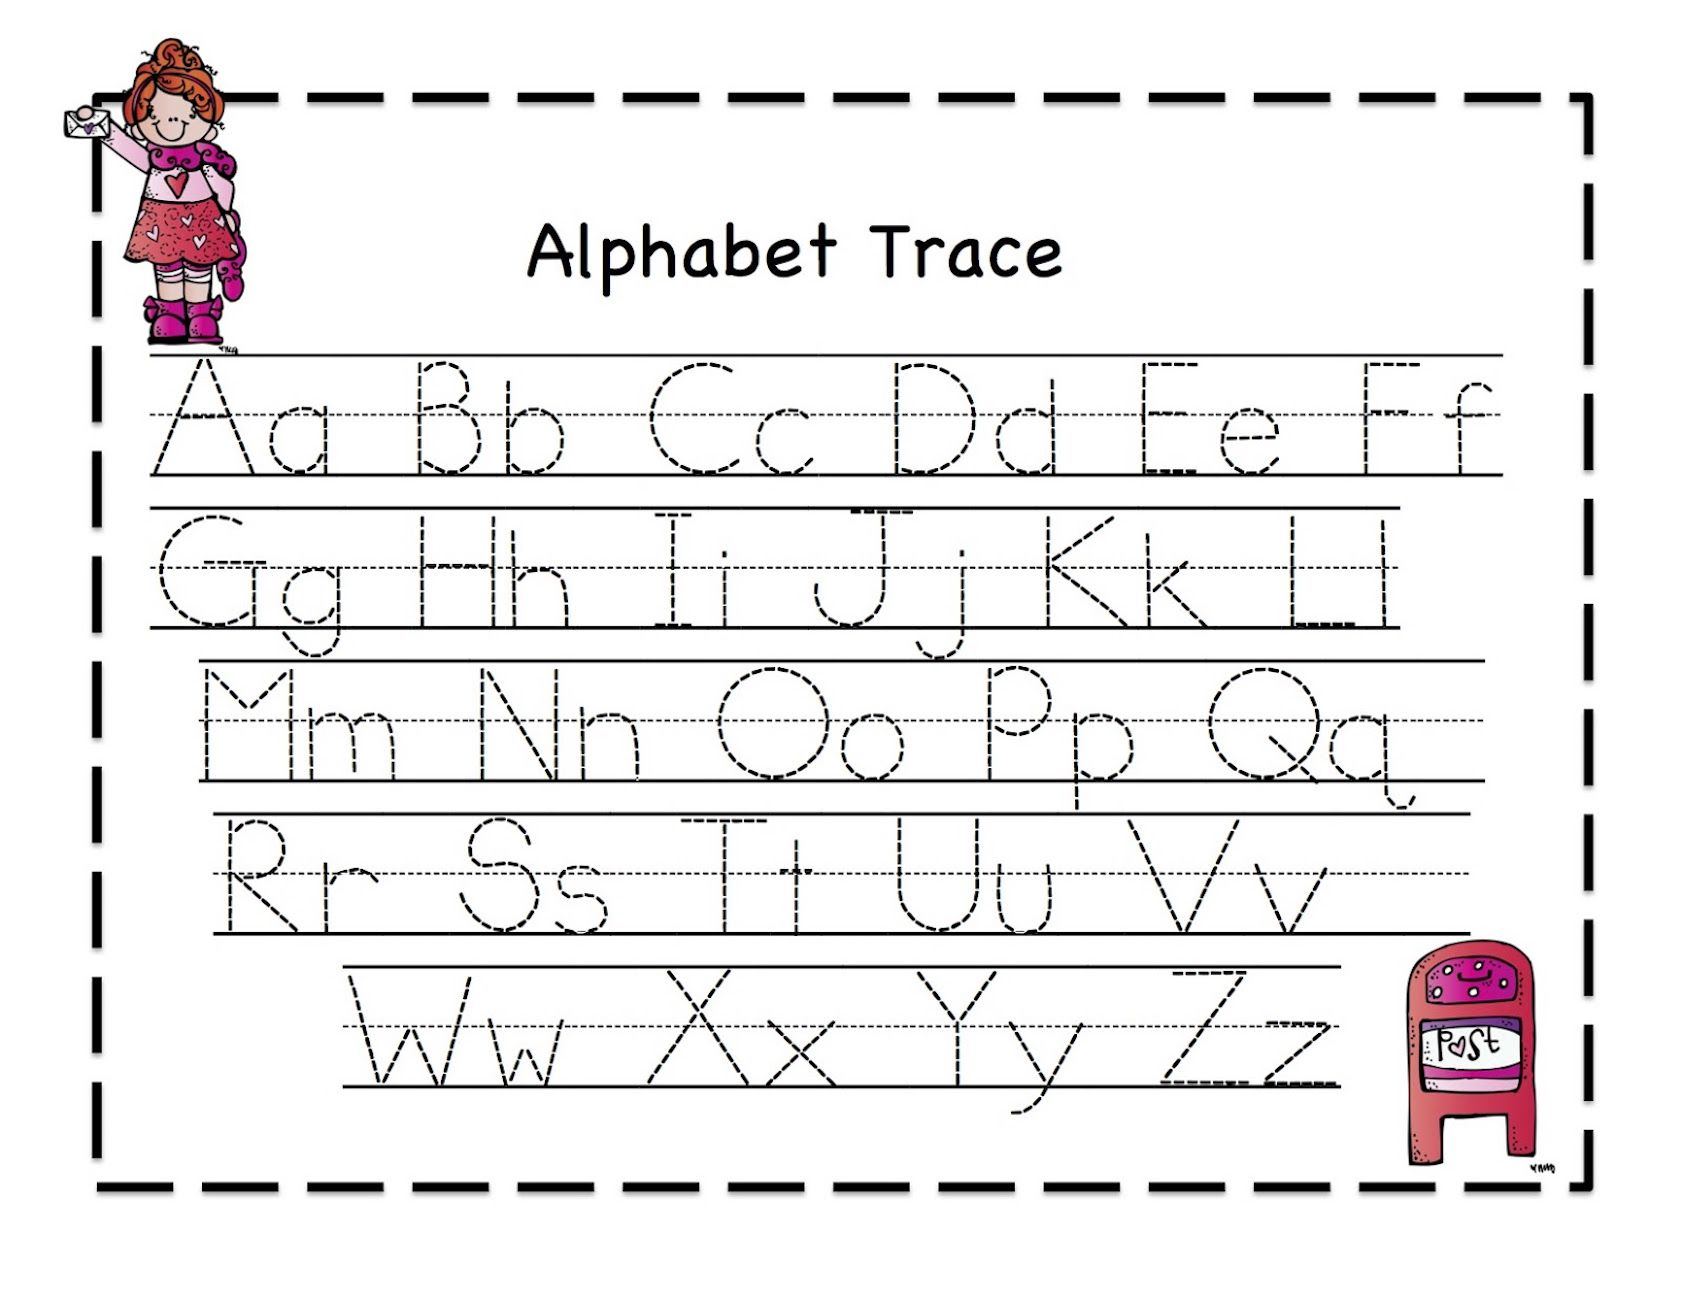 Abc Tracing Sheets For Preschool 1 683 1 300 Pixels